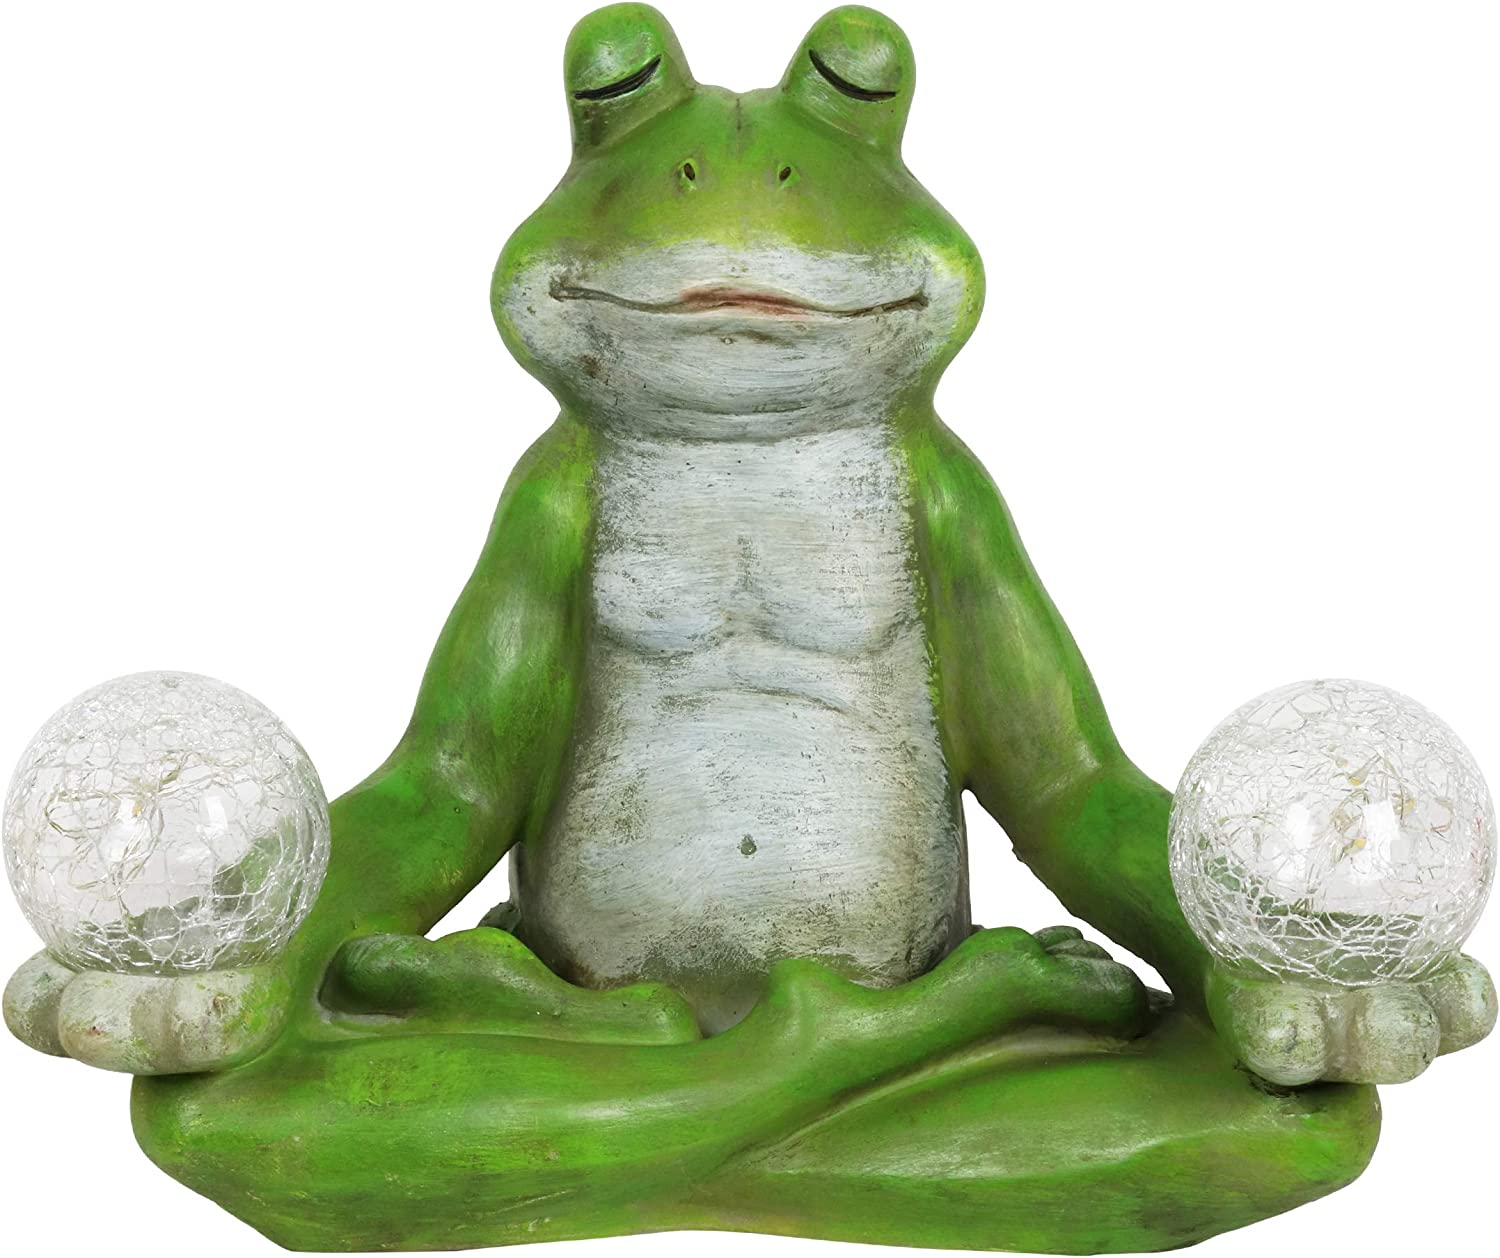 "Exhart Solar Yoga Frog Holding 2 Glass Balls Garden Statue - Hand-Painted Resin Statue of a Green Frog in Cross-Legged Meditation Pose w/Solar LED Lights Glass Orbs, 11"" Wide x 9"" Inches Tall"